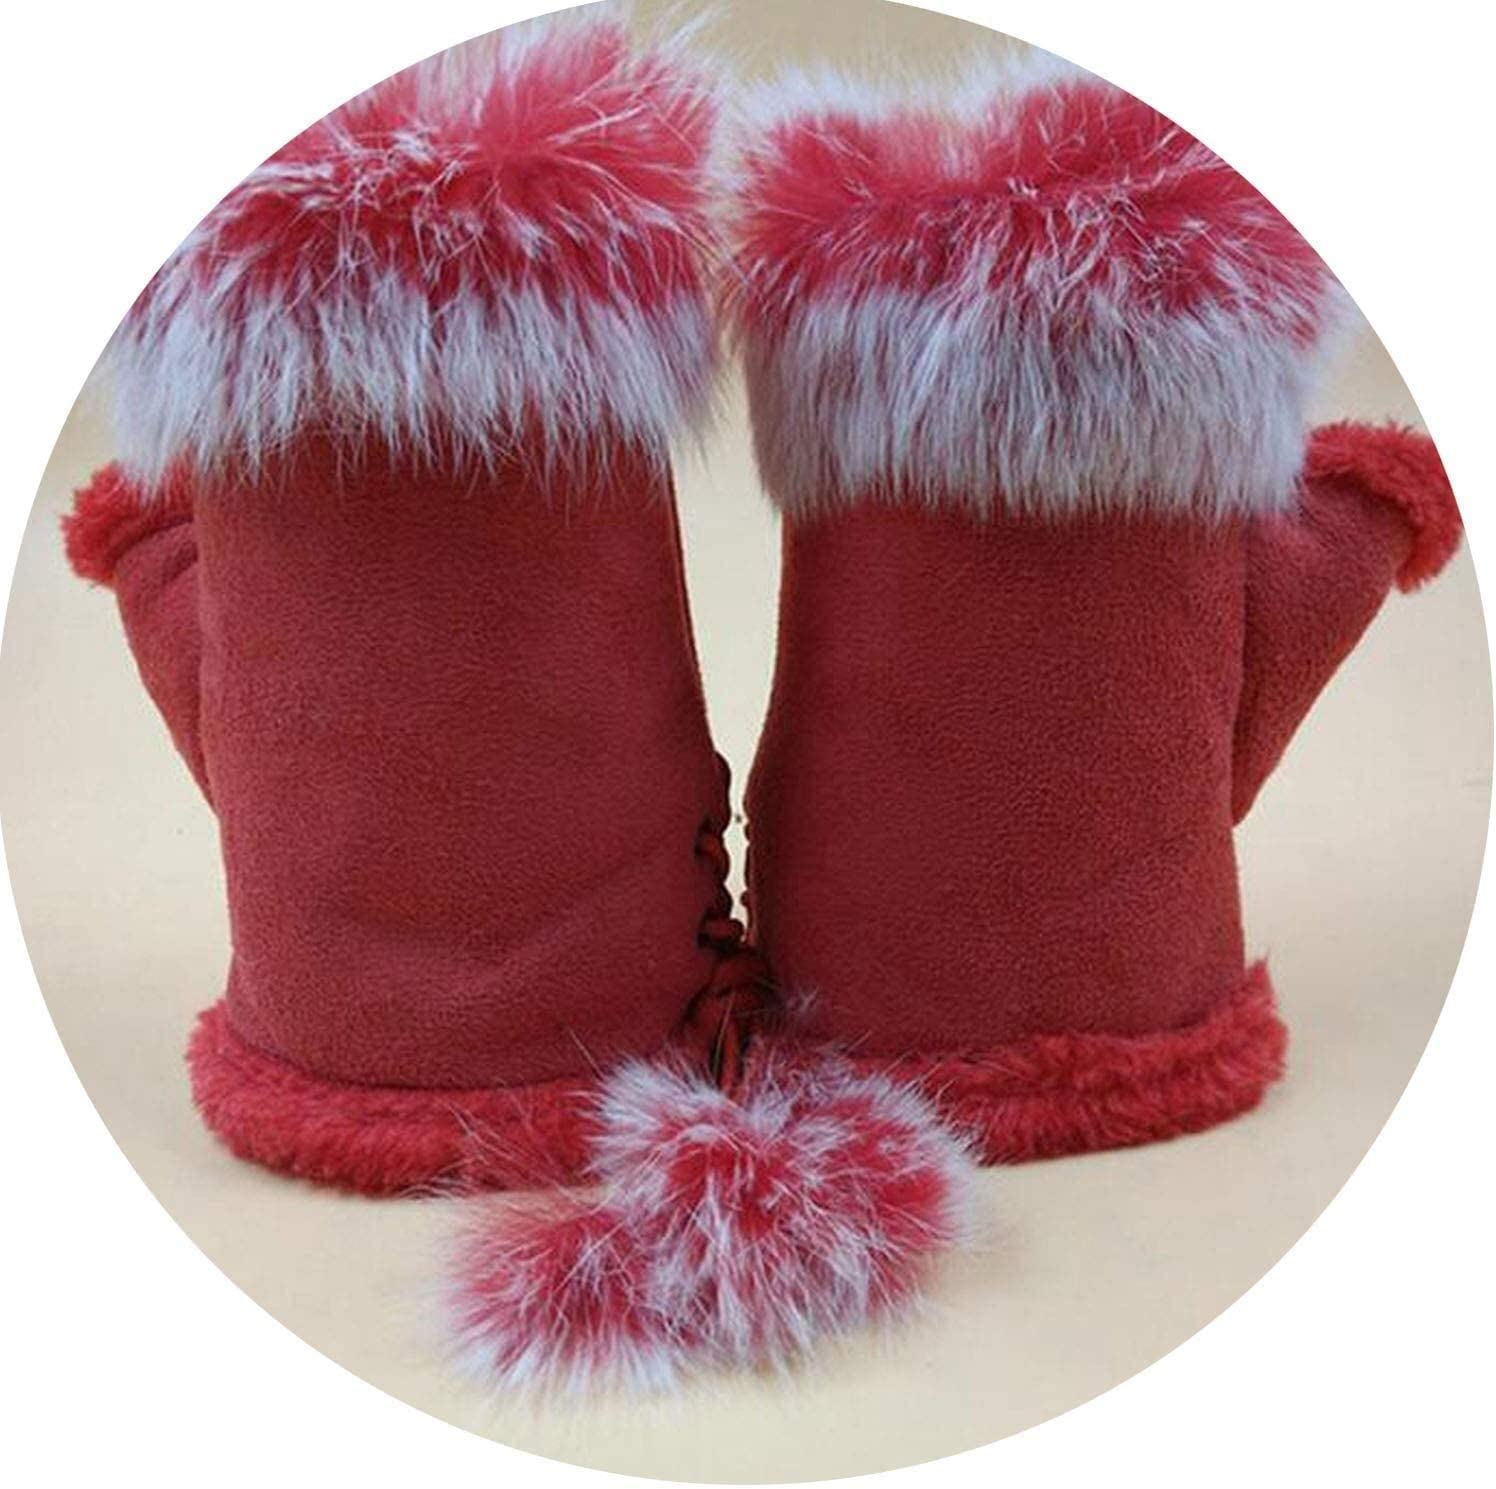 Warm Gloves Female Rabbit Hair Wrist Gloves Fingerless Computer Typing Mittens Winter Women Suede Leather Warm Thick Cashmere Gloves (Color : Red, Size : One Size)